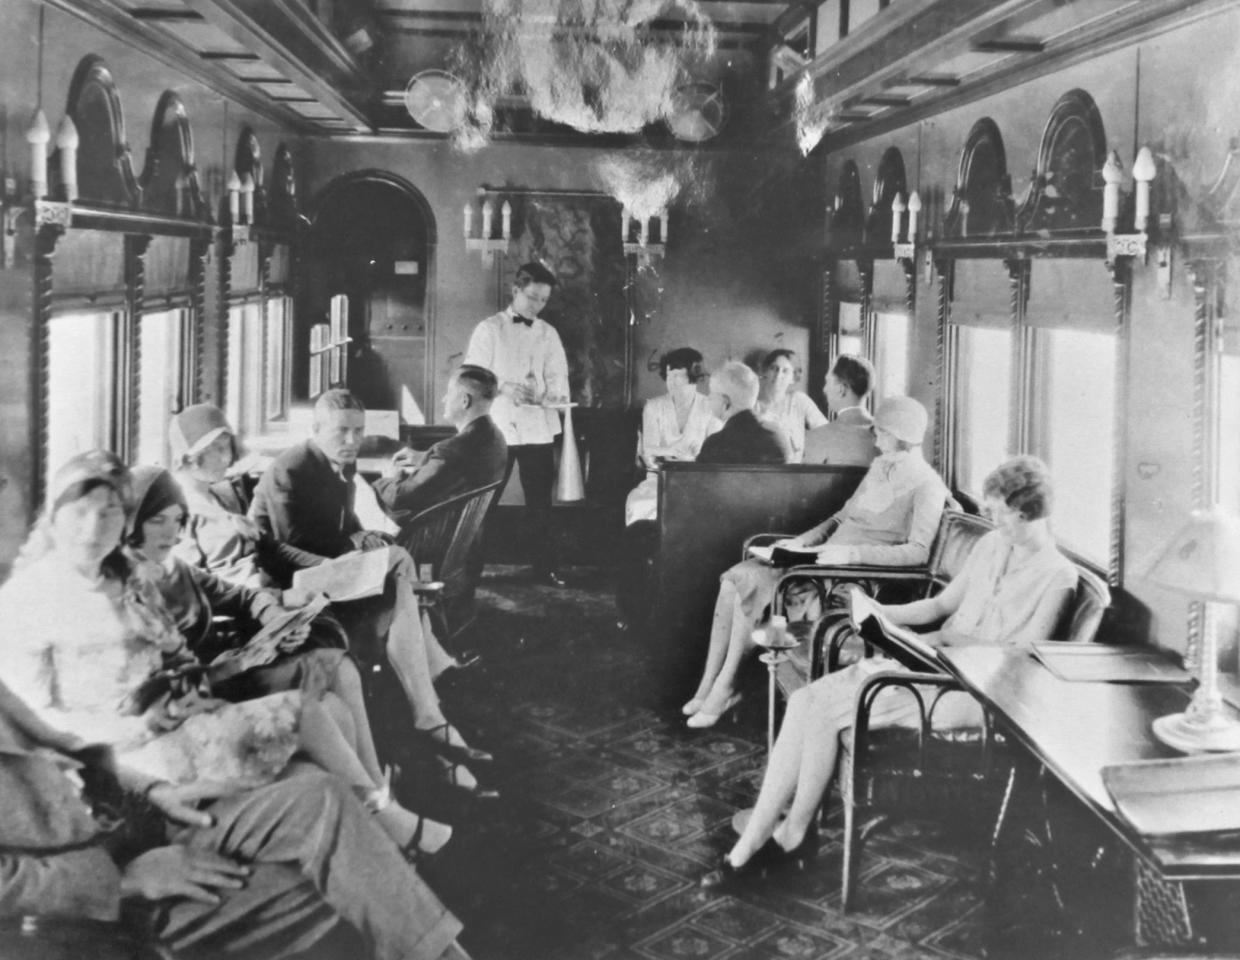 This undated photo provided by the Monroe County Library shows passengers riding in the club car of Henry Flagler's Florida Keys Over-Sea Railroad train. The centennial anniversary of the first train's arrival into Key West and the completion of the Over-Sea Railroad project will be marked on Jan. 22, 2012. (AP Photo/Monroe County Library via the Florida Keys News Bureau)